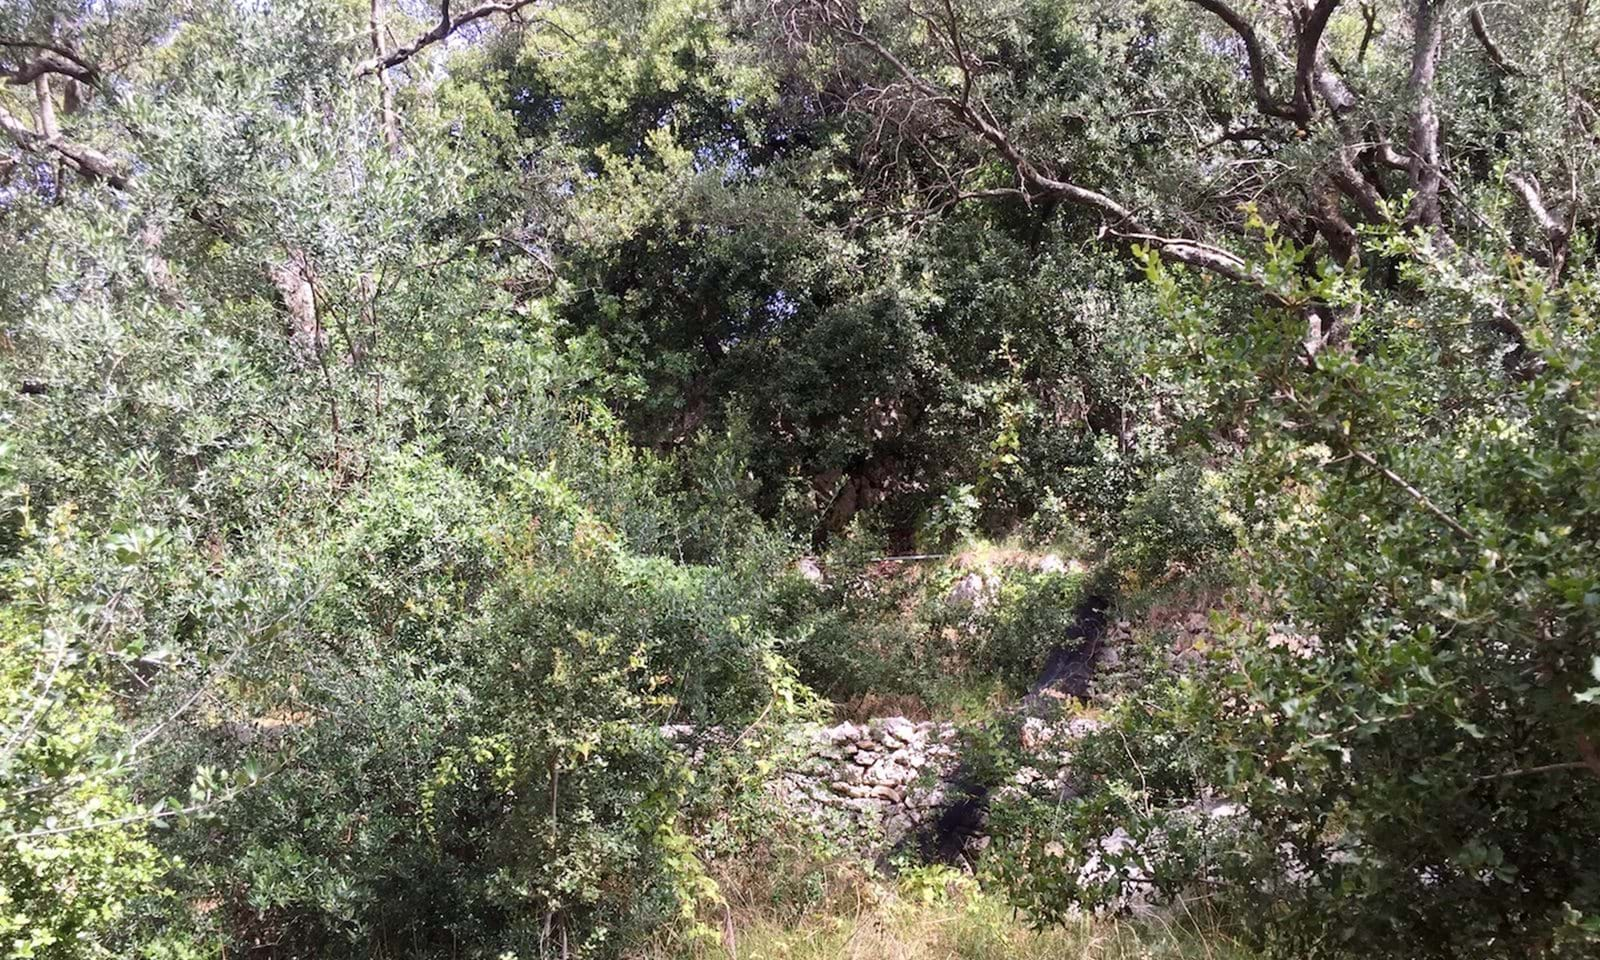 Olive trees in corfu, land in nissaki for sale